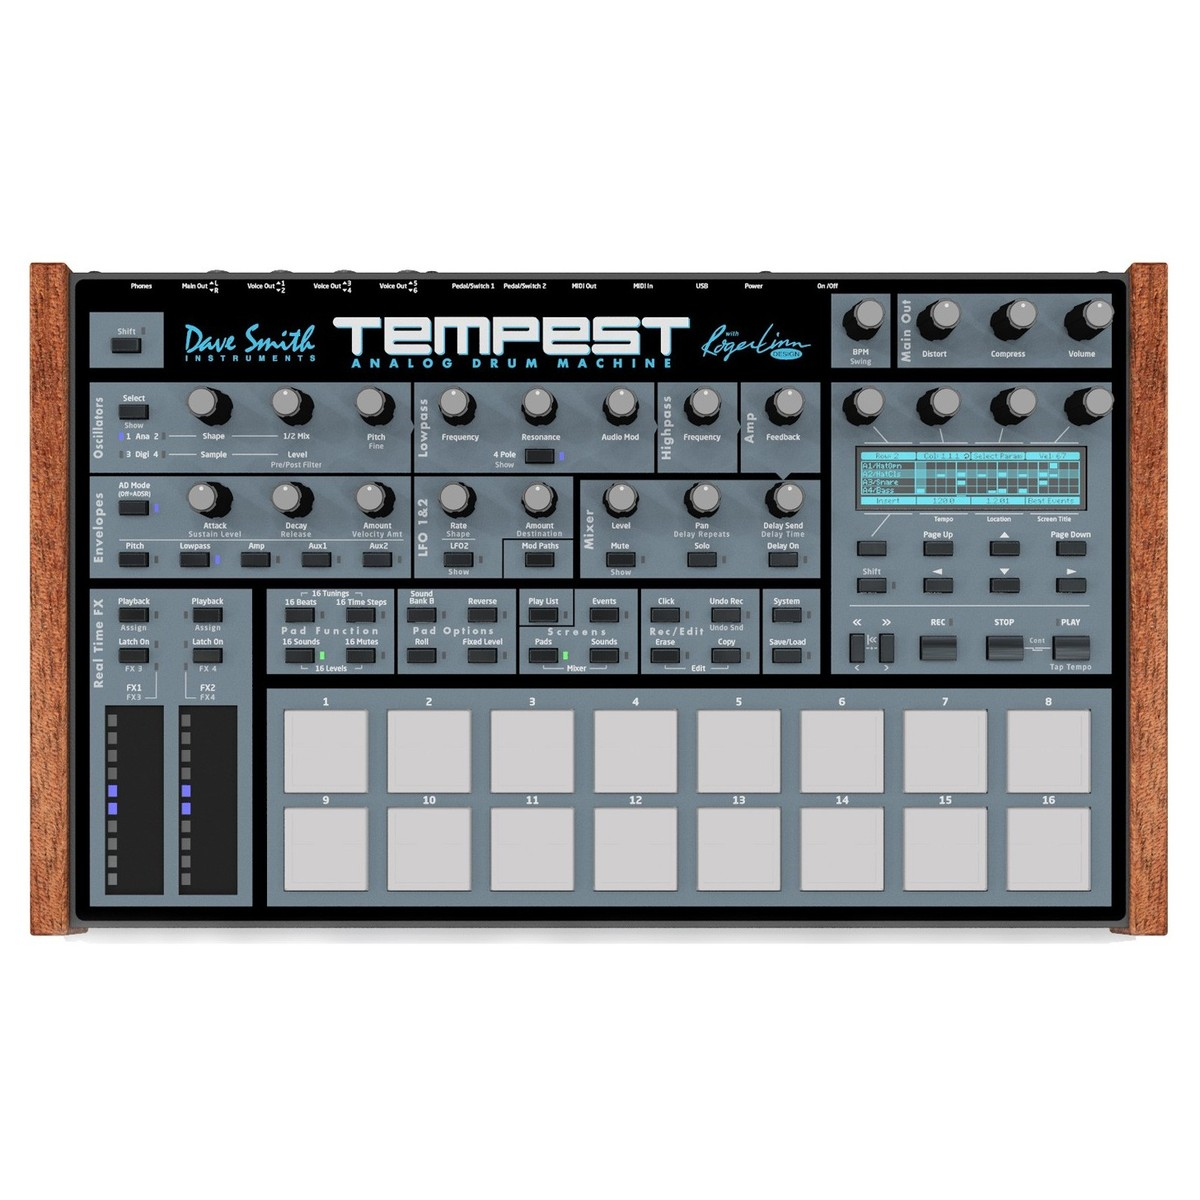 Dave Smith Instruments Tempest Analog Drum Machine At Gear4music The Wireless Remote Control Equipment Has Two Modes Latched Top Loading Zoom